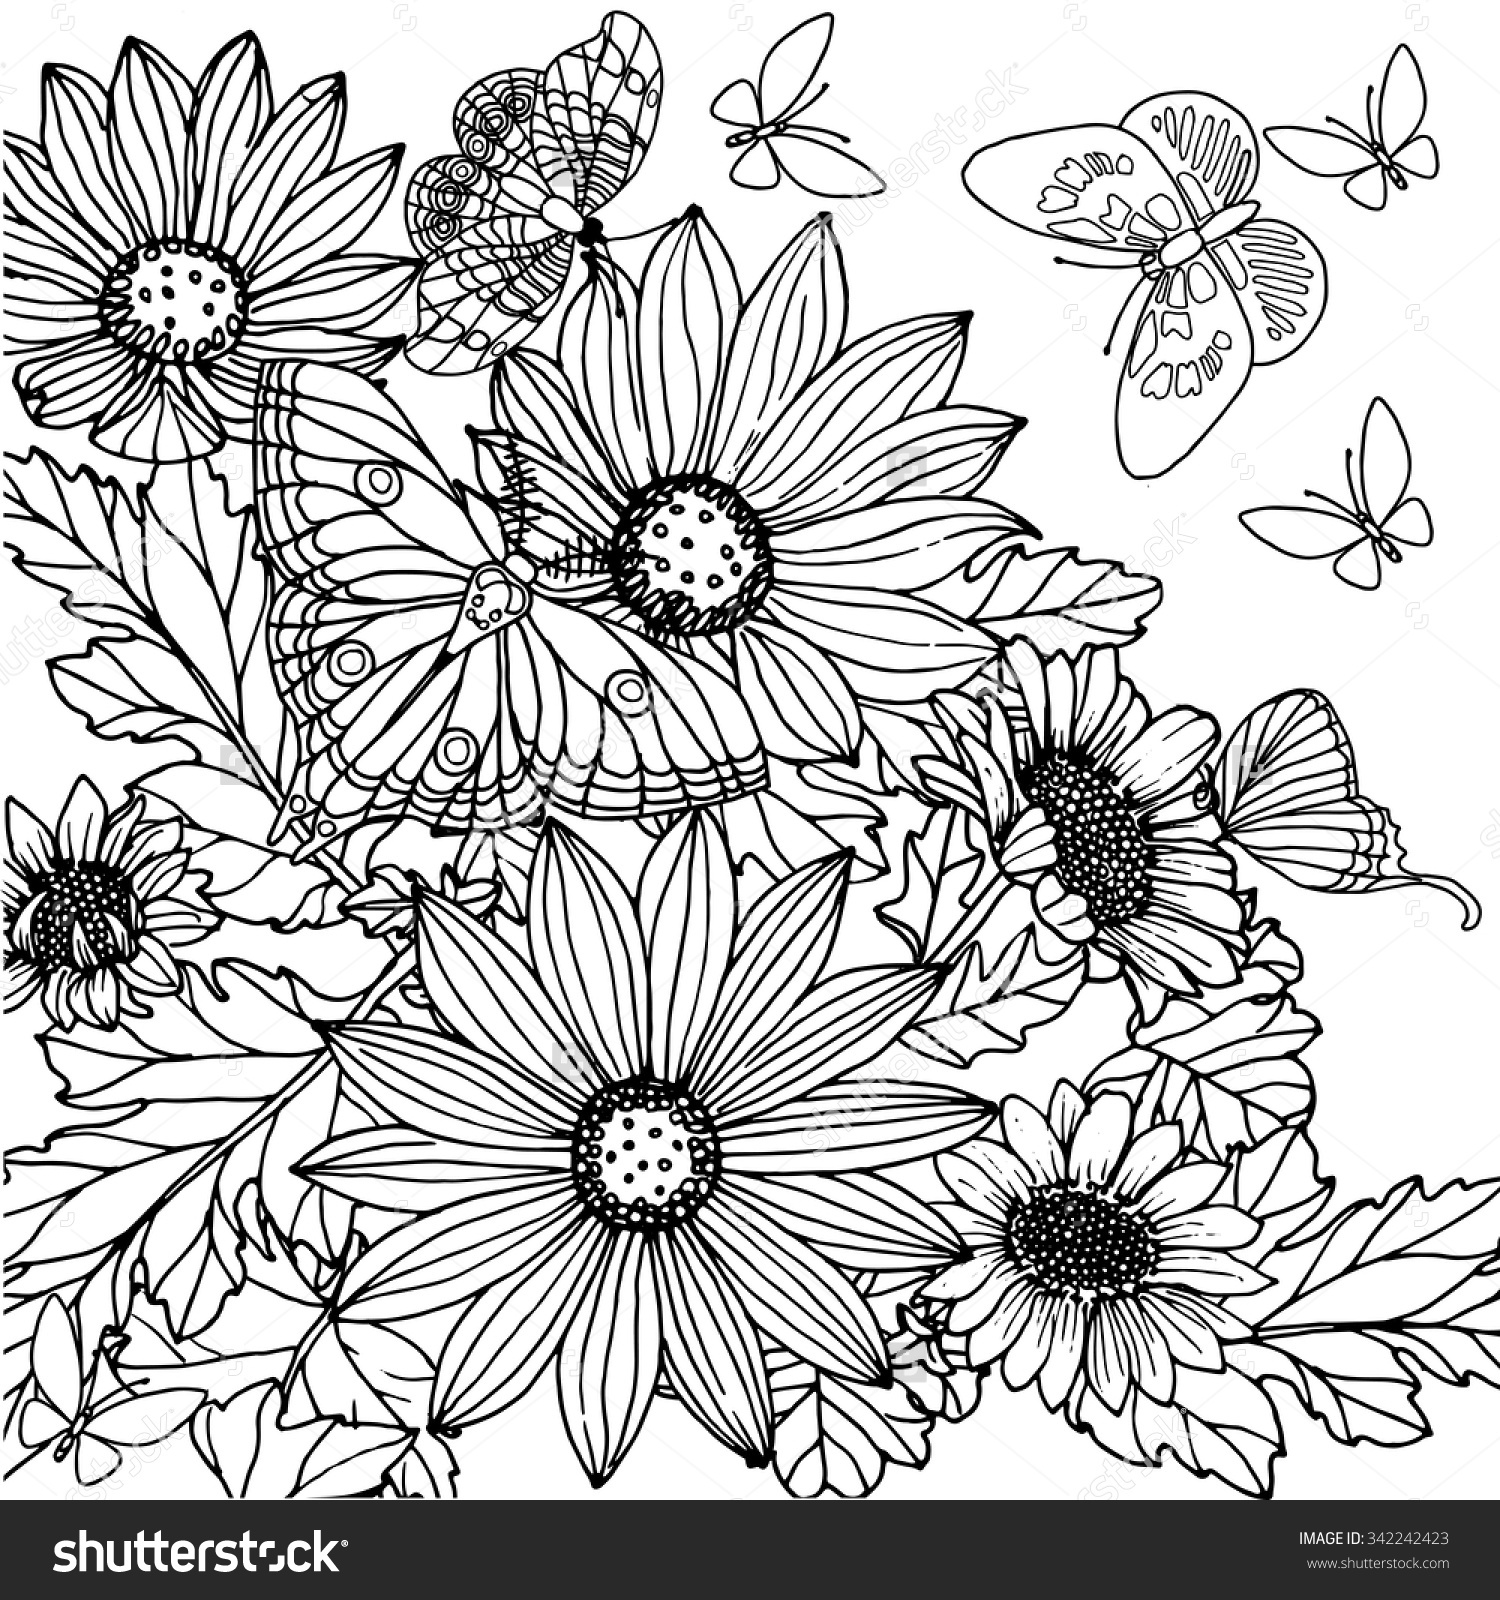 Echinacea coloring #13, Download drawings